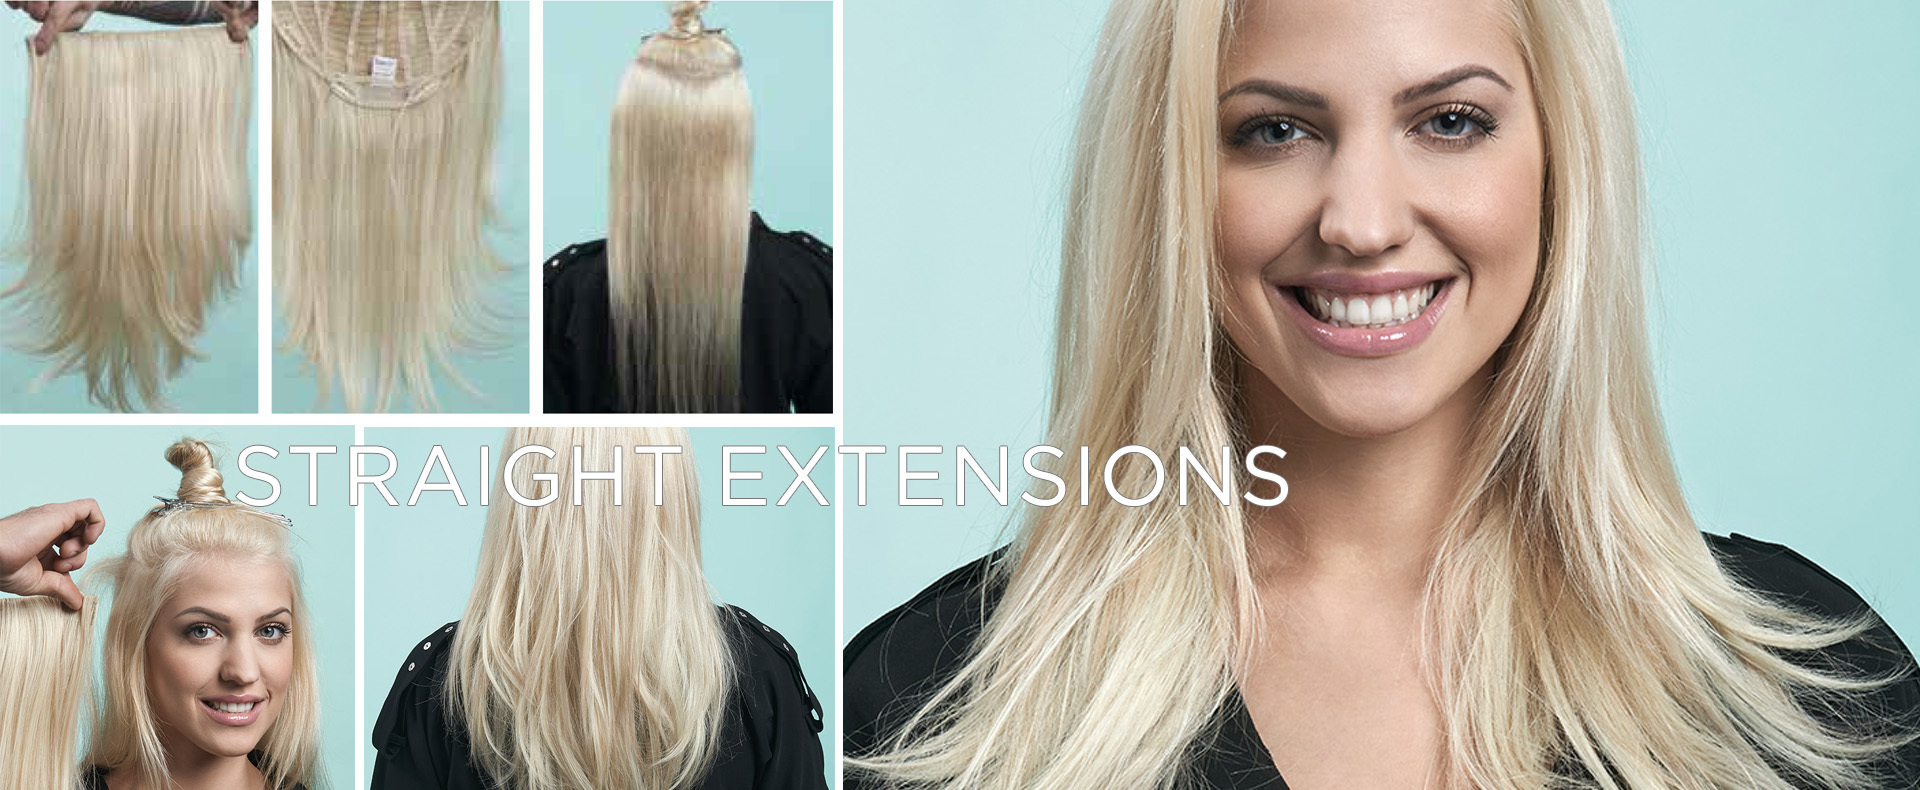 22 Inch Straight Extension Glatte Clip In Extension